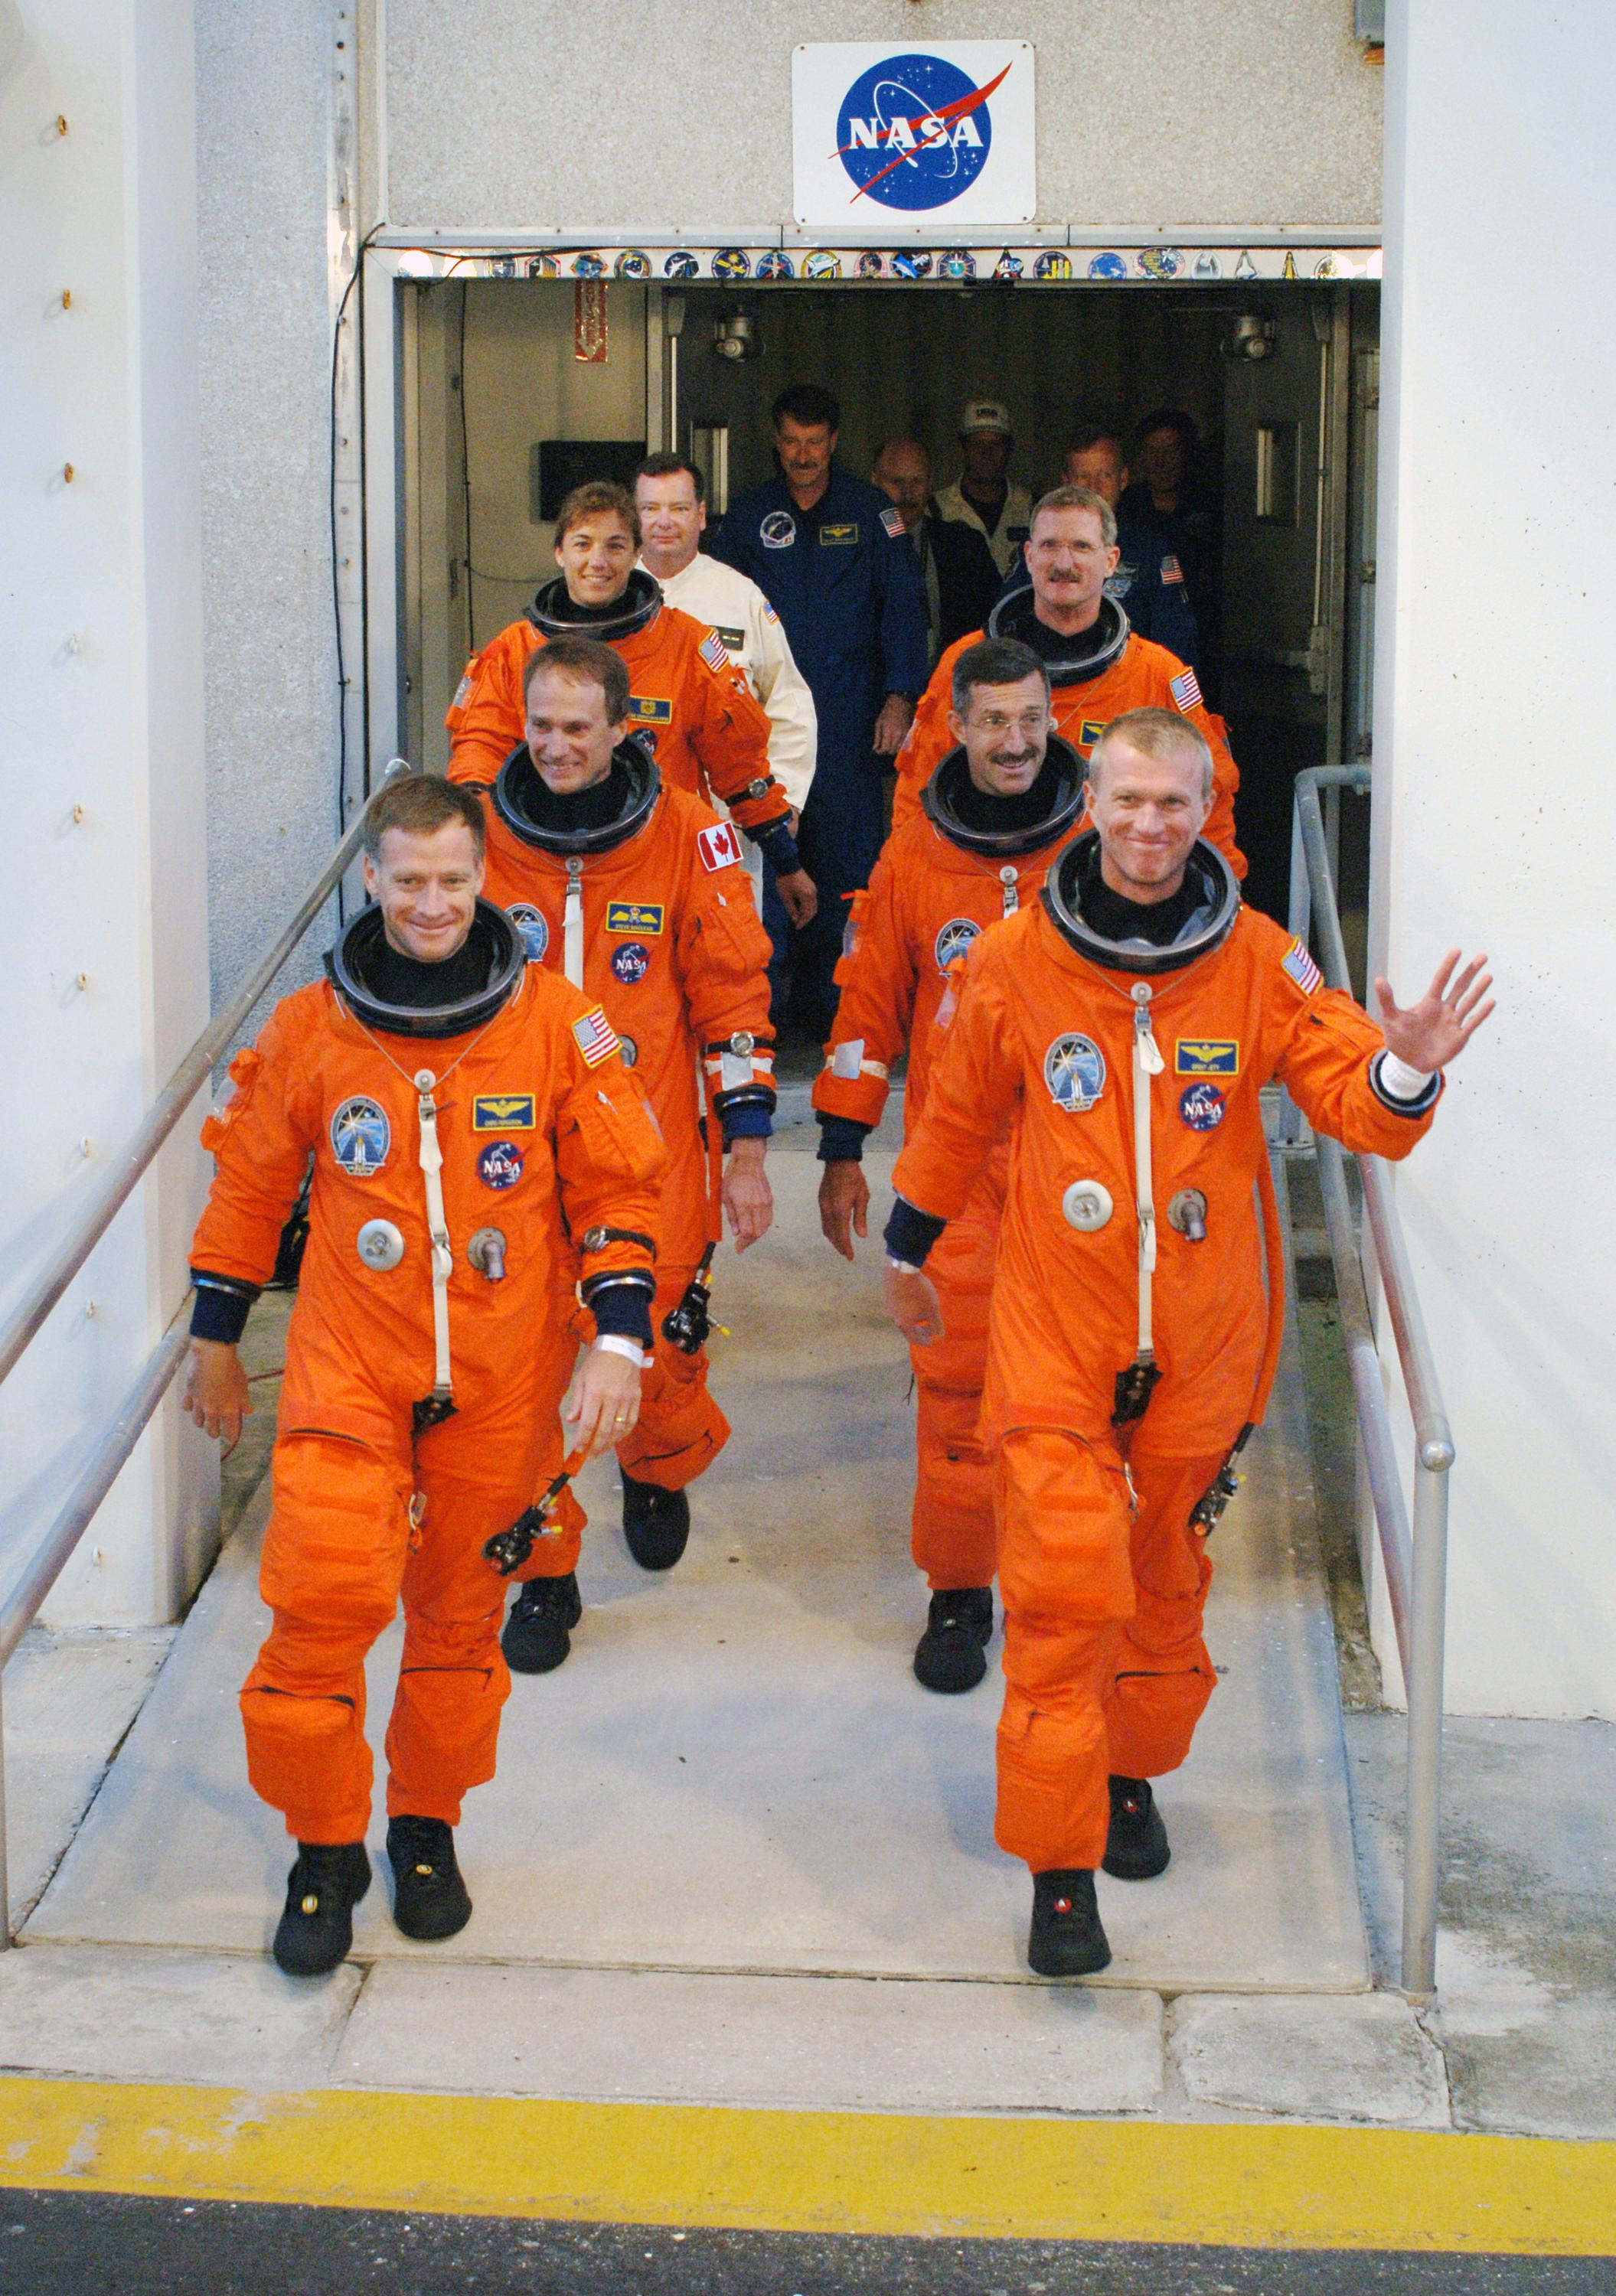 NASA - STS-115: A Mission to Build On